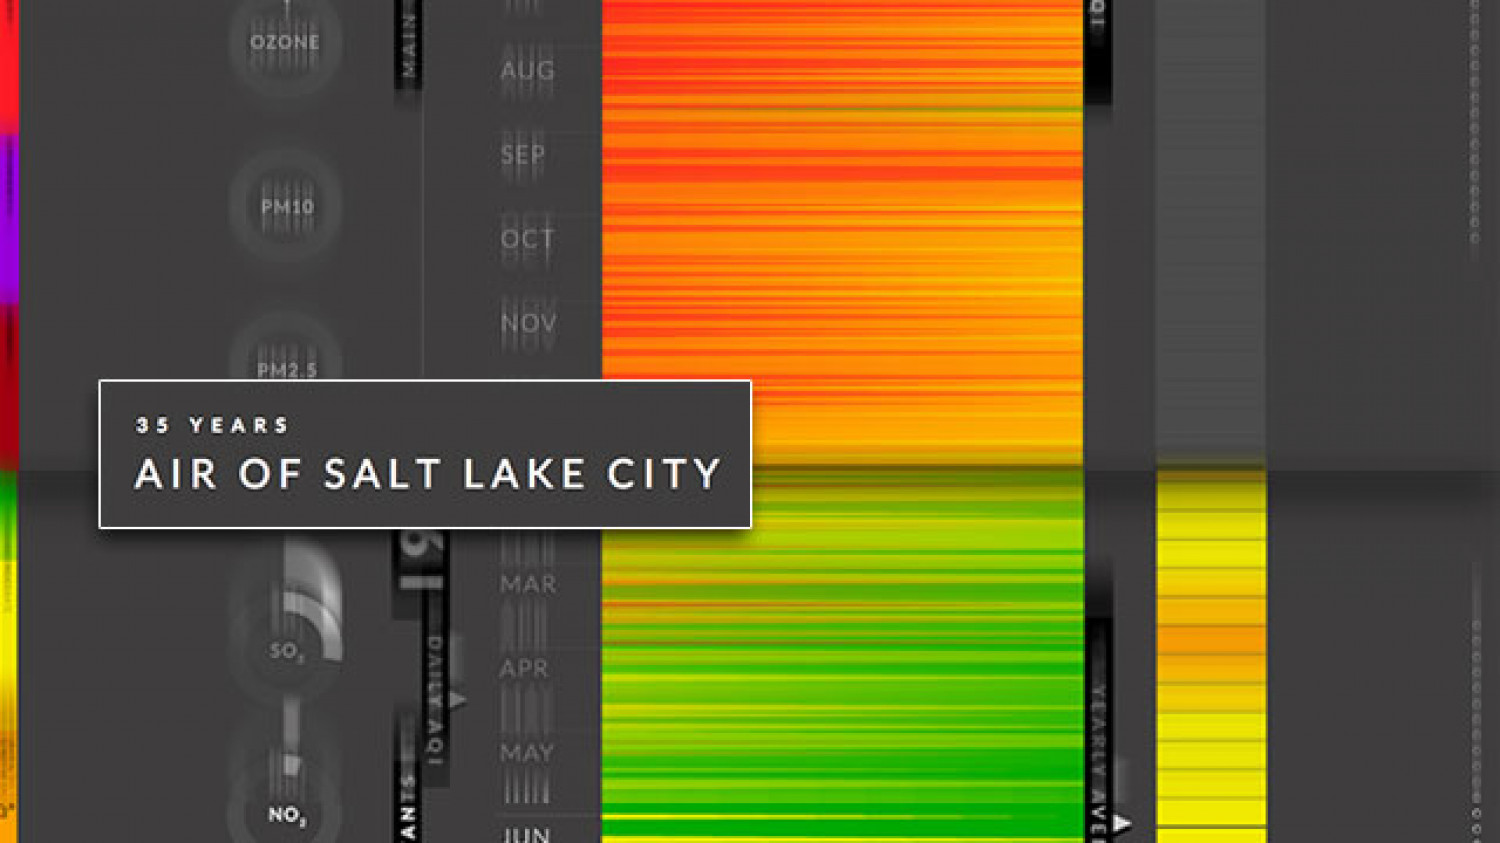 Air of Salt Lake City in 35 Years Infographic